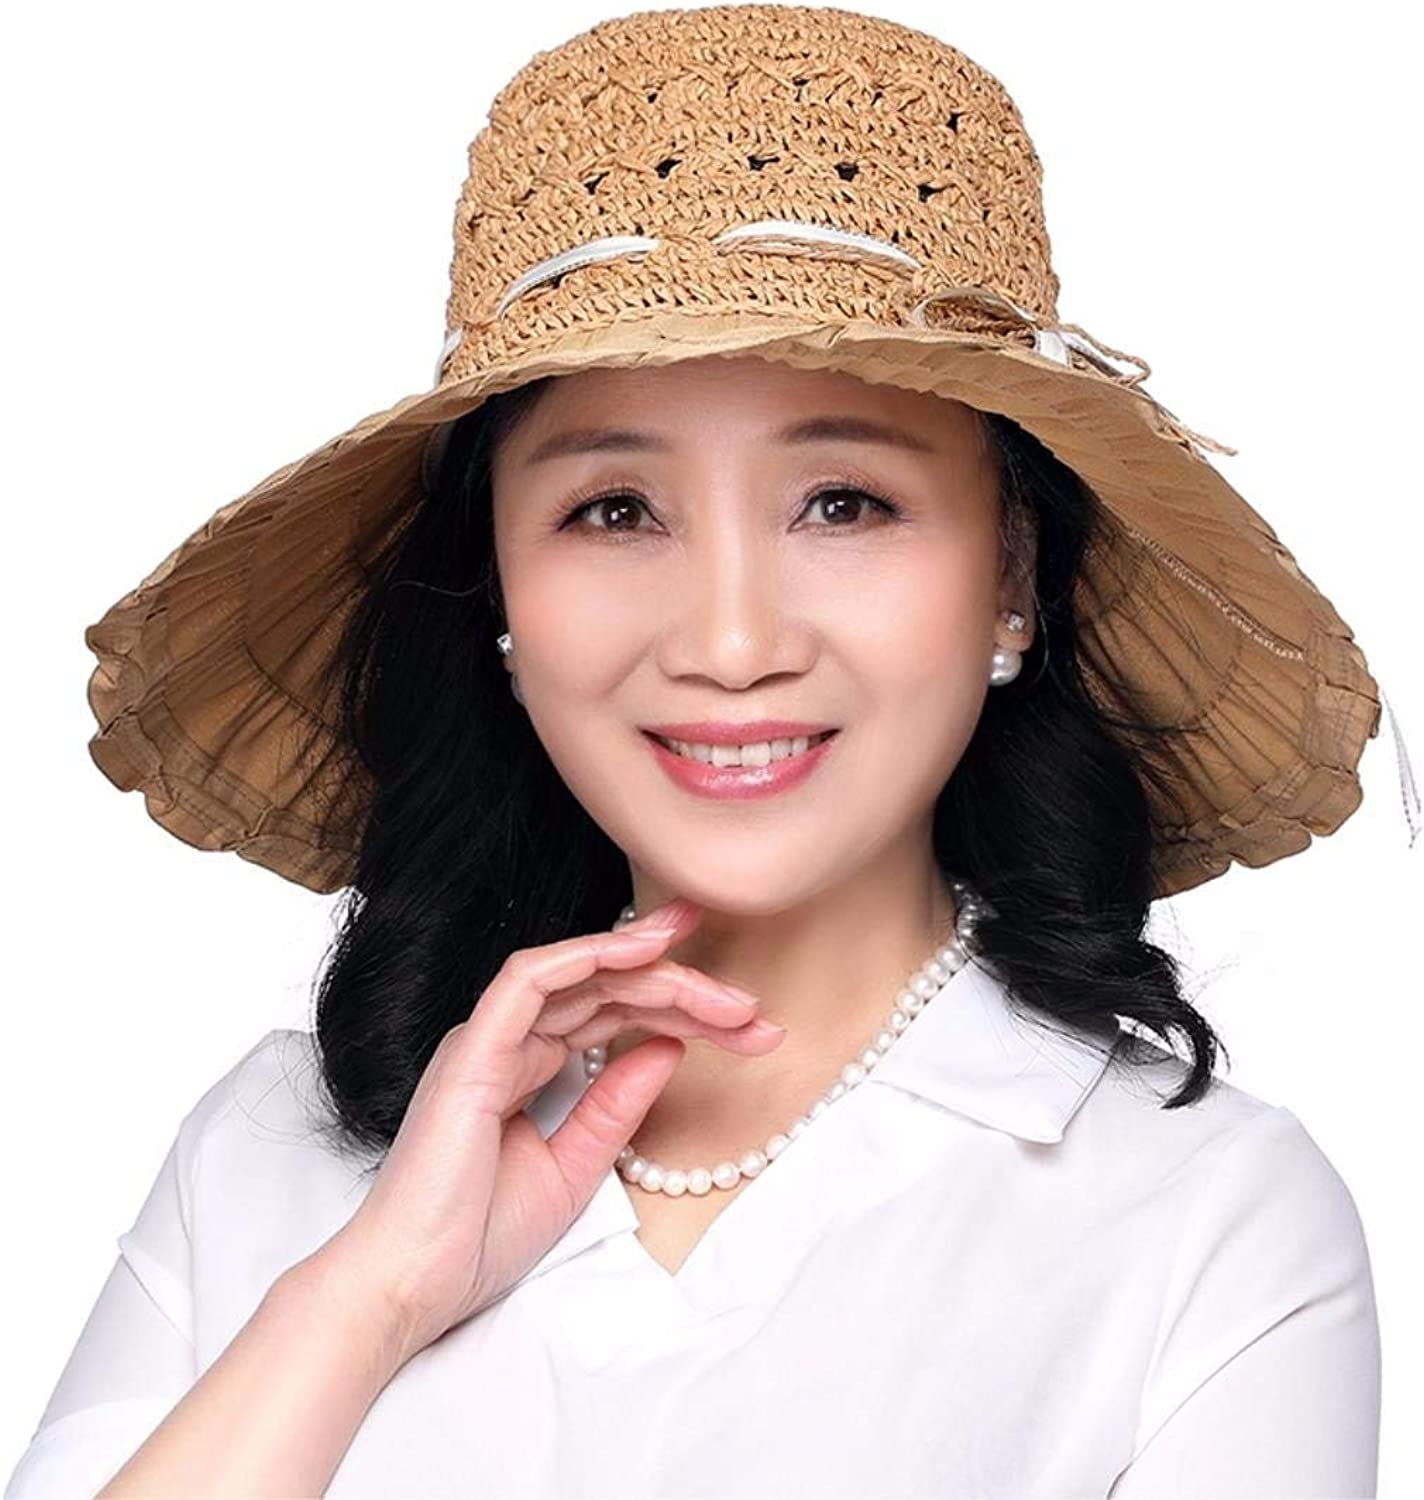 Chuiqingnet Gift for Mom Gift for grandmother Summer hat, summer resort, straw hat sunscreen hat Beach Hat middle age hat Hat